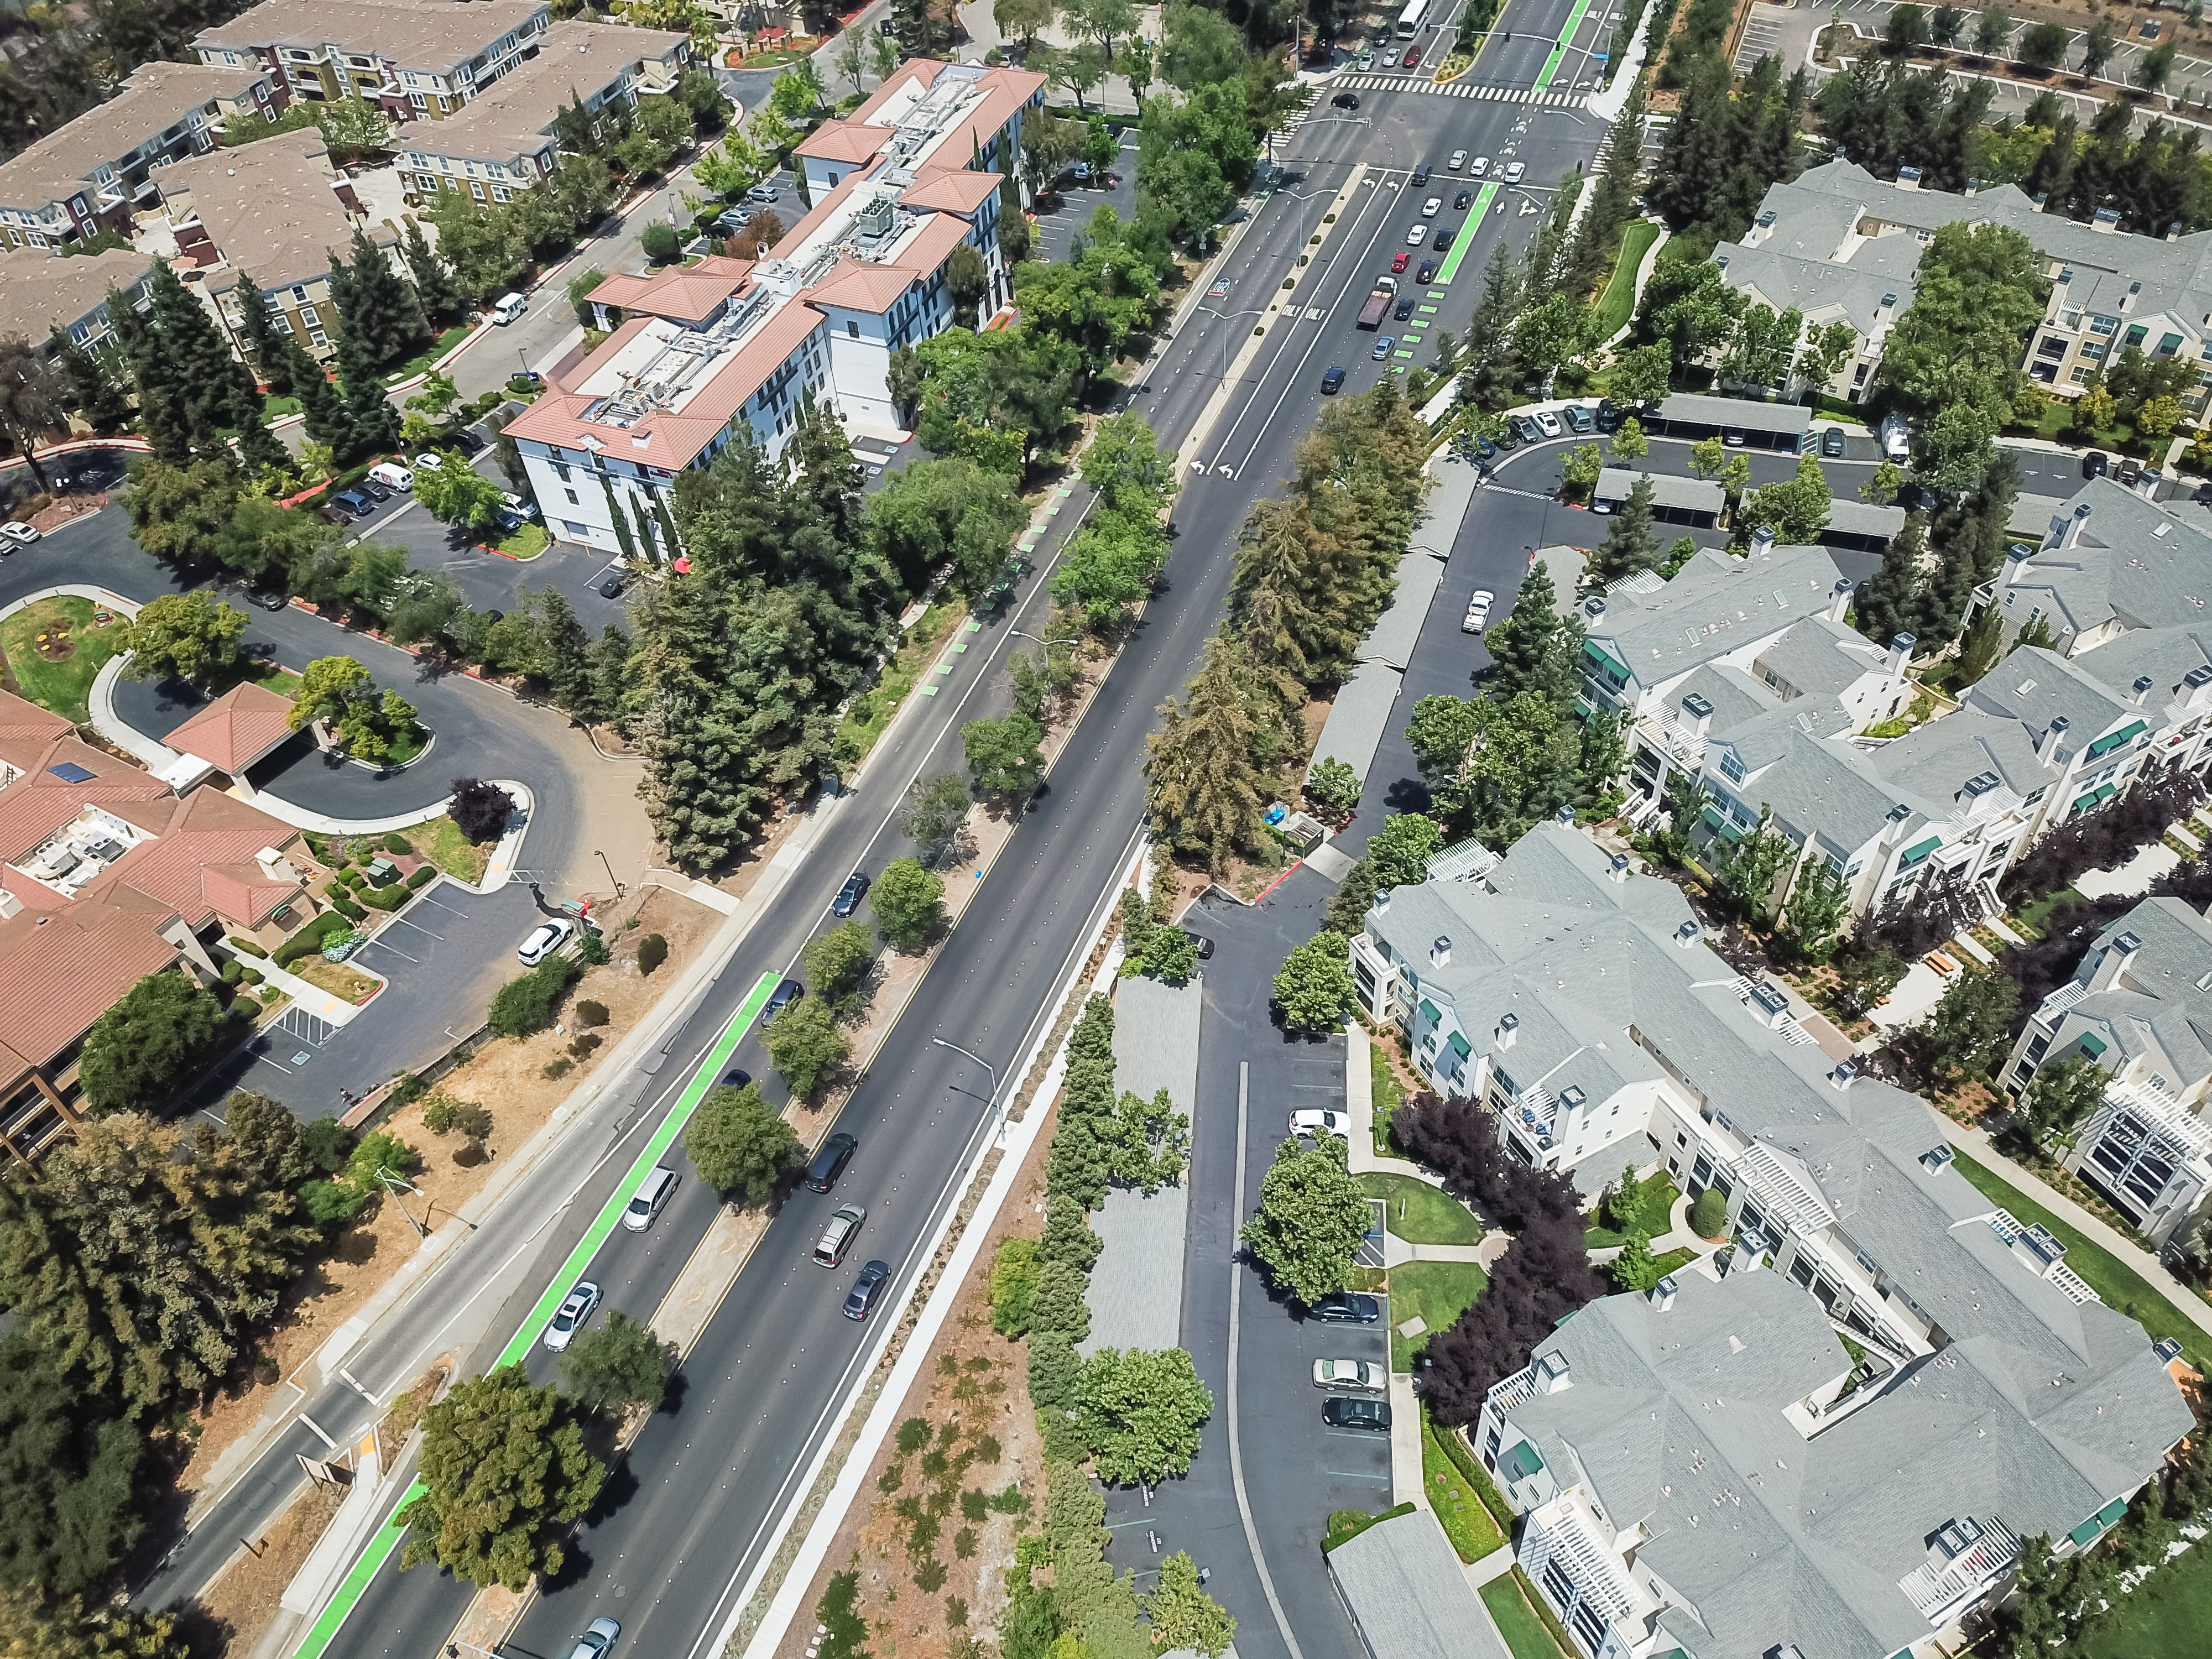 View of streets and one-story homes from above.